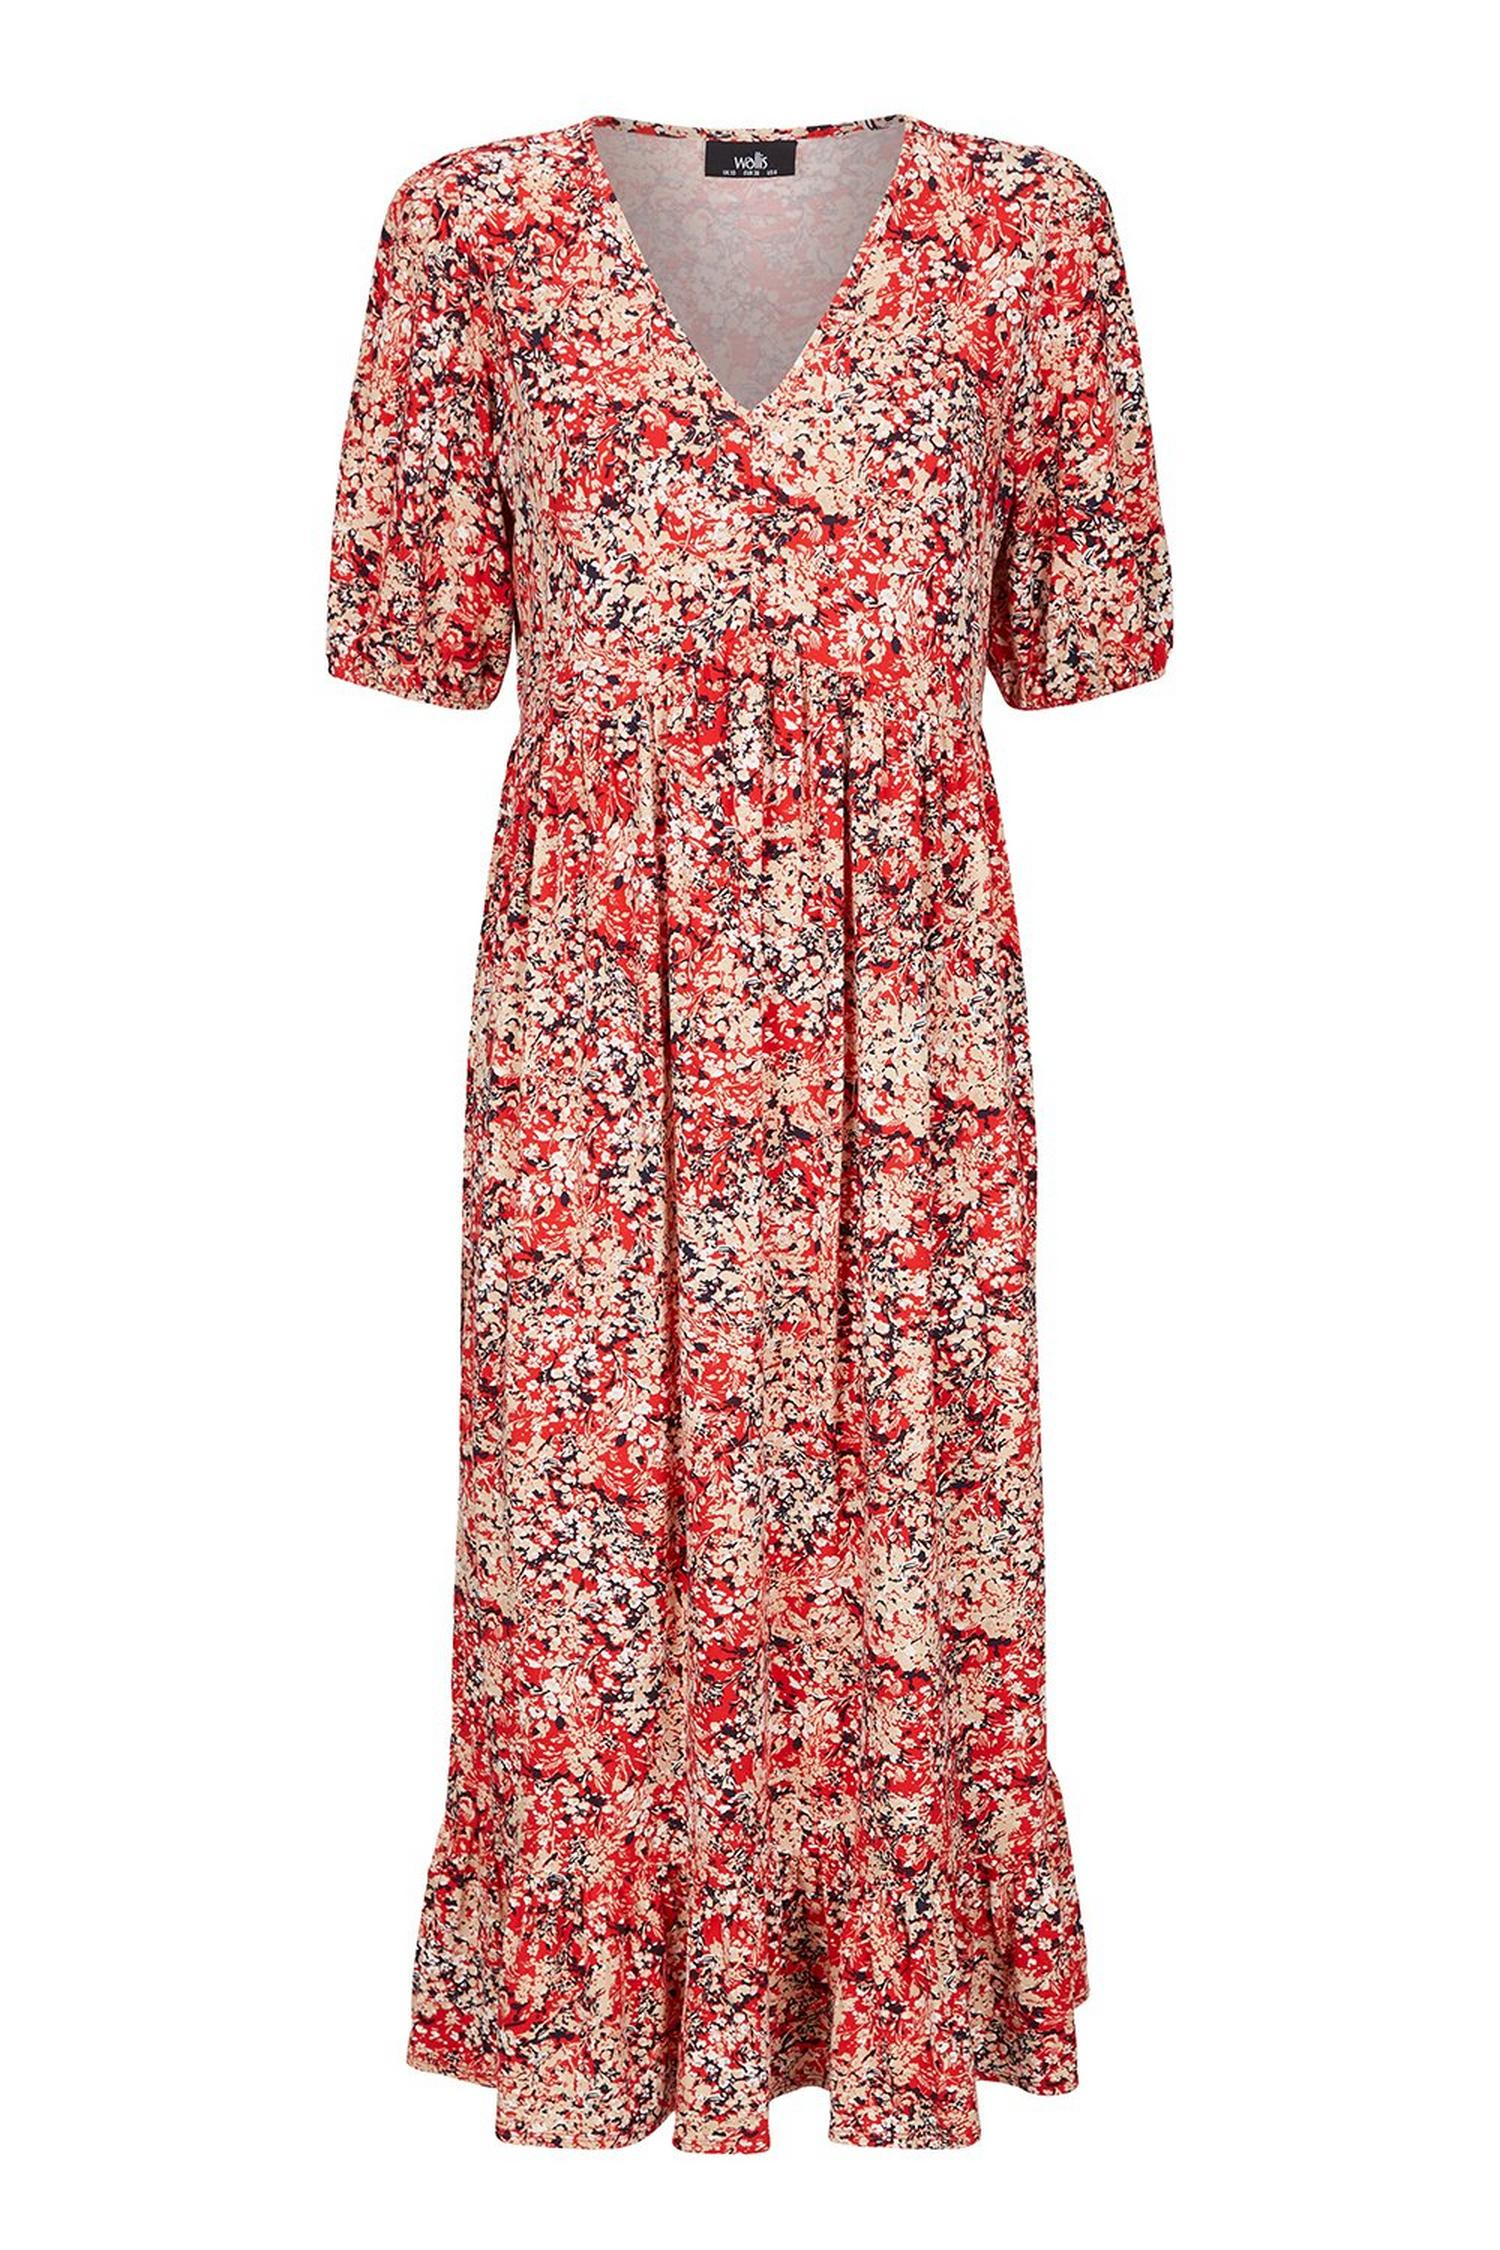 157 TALL Red Floral Print Midi Dress image number 2